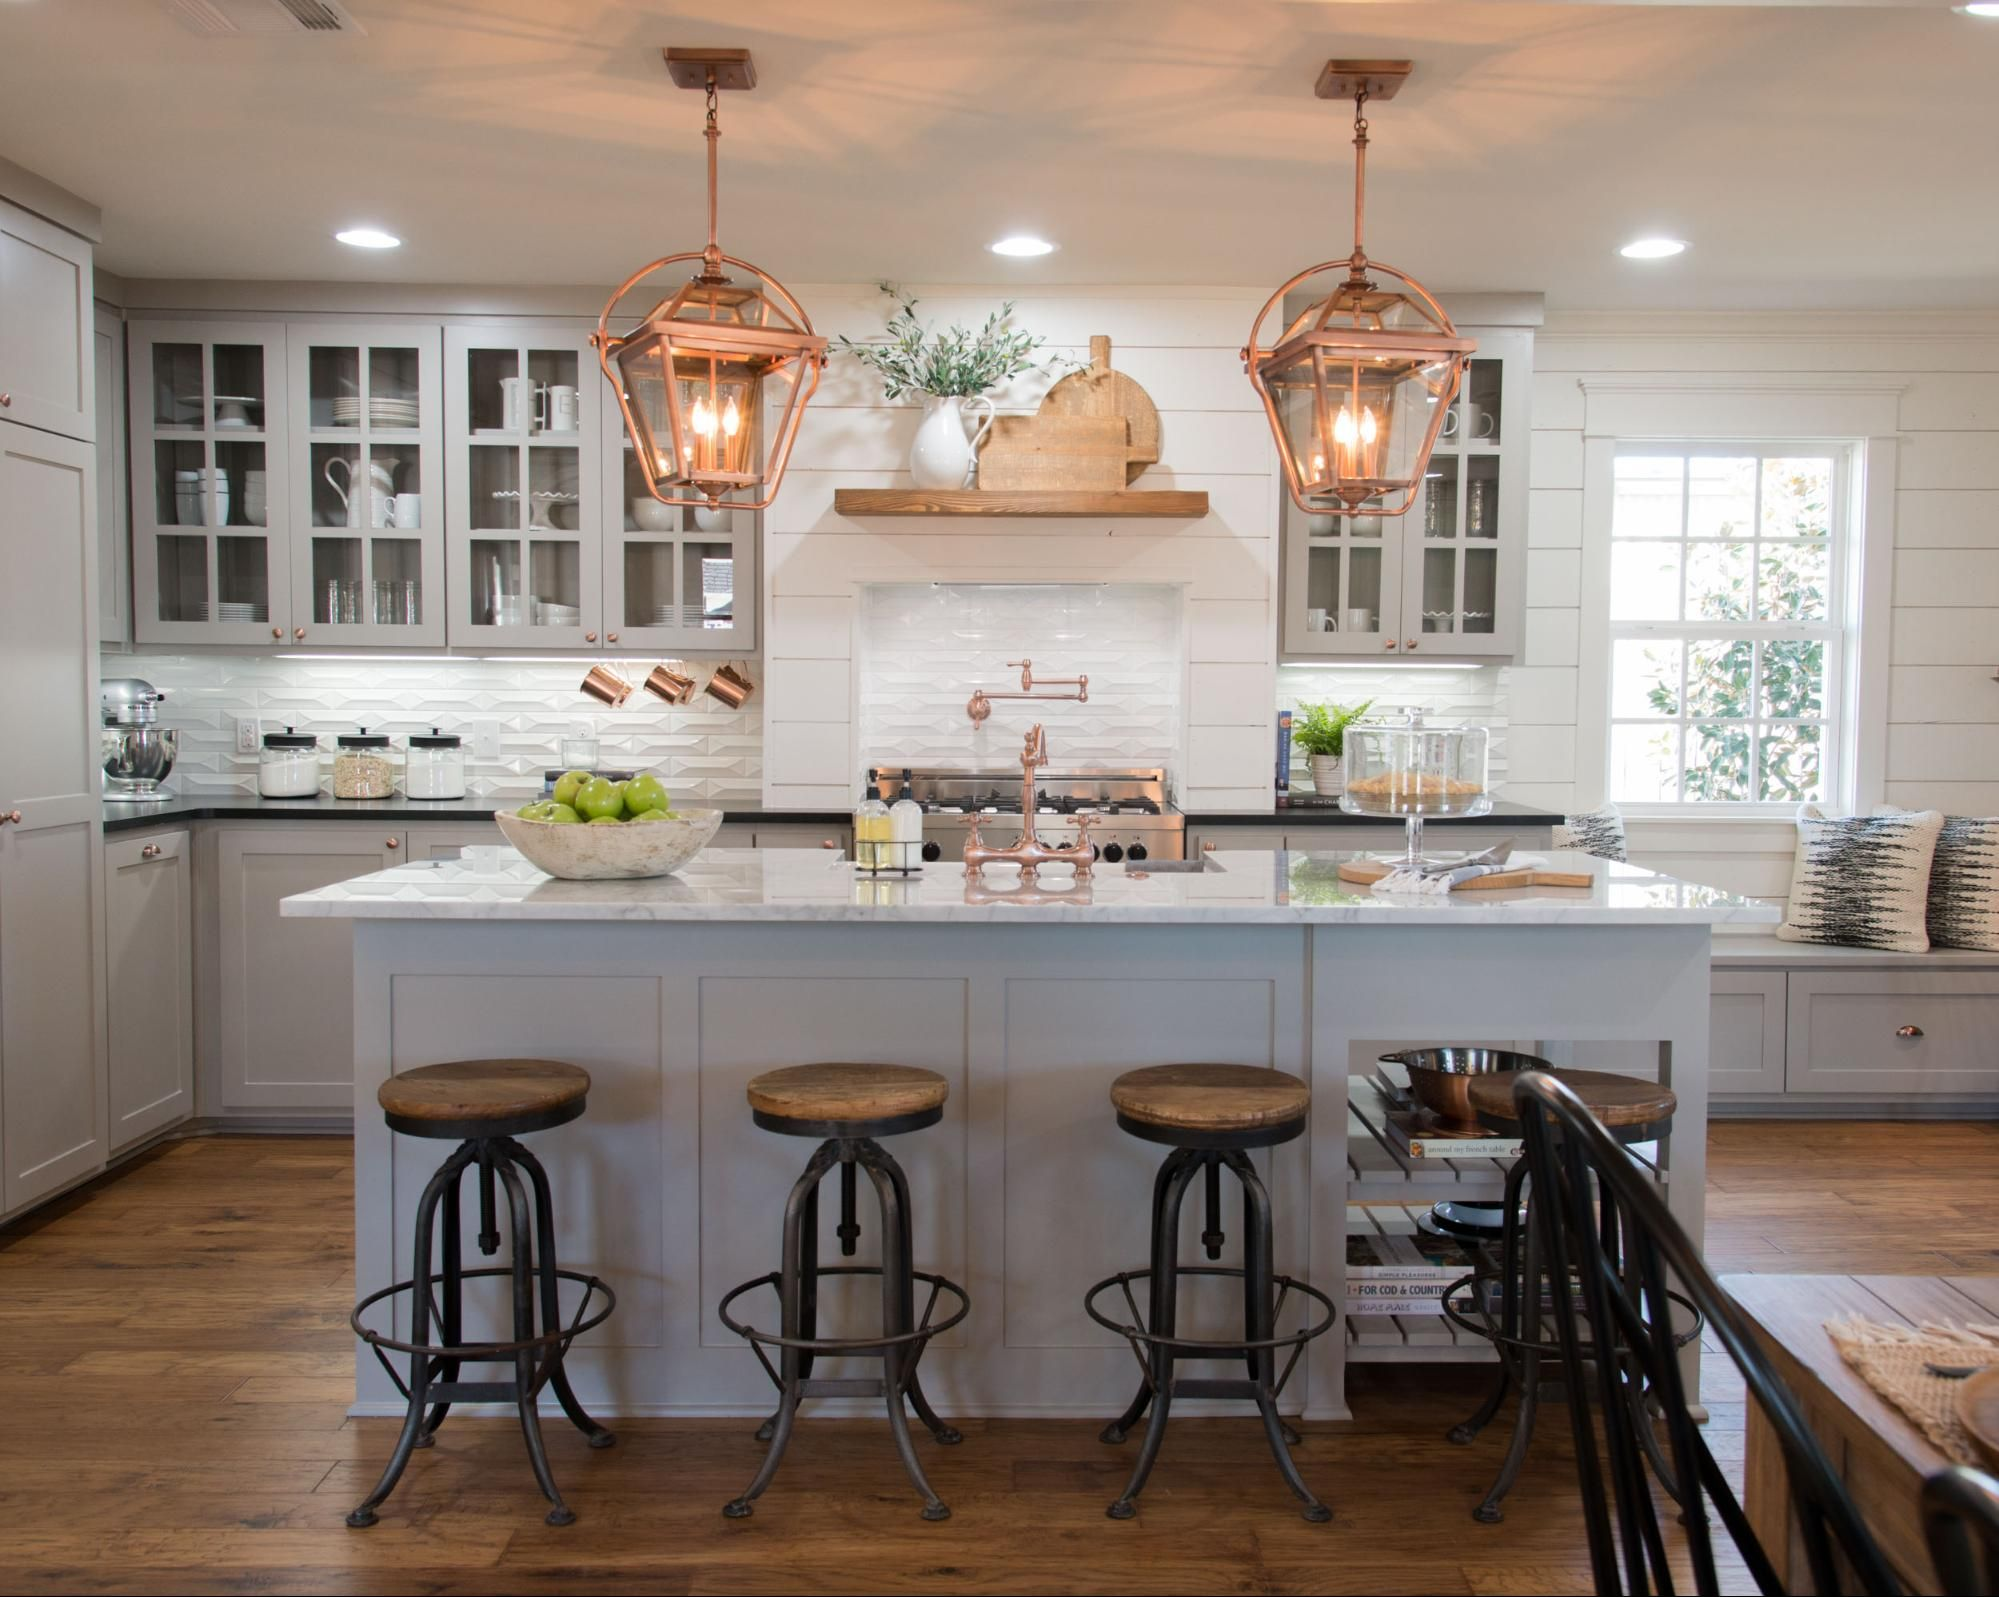 Fixer upper brass kitchen - Magnolia Farms Fixer Upper Cottage House